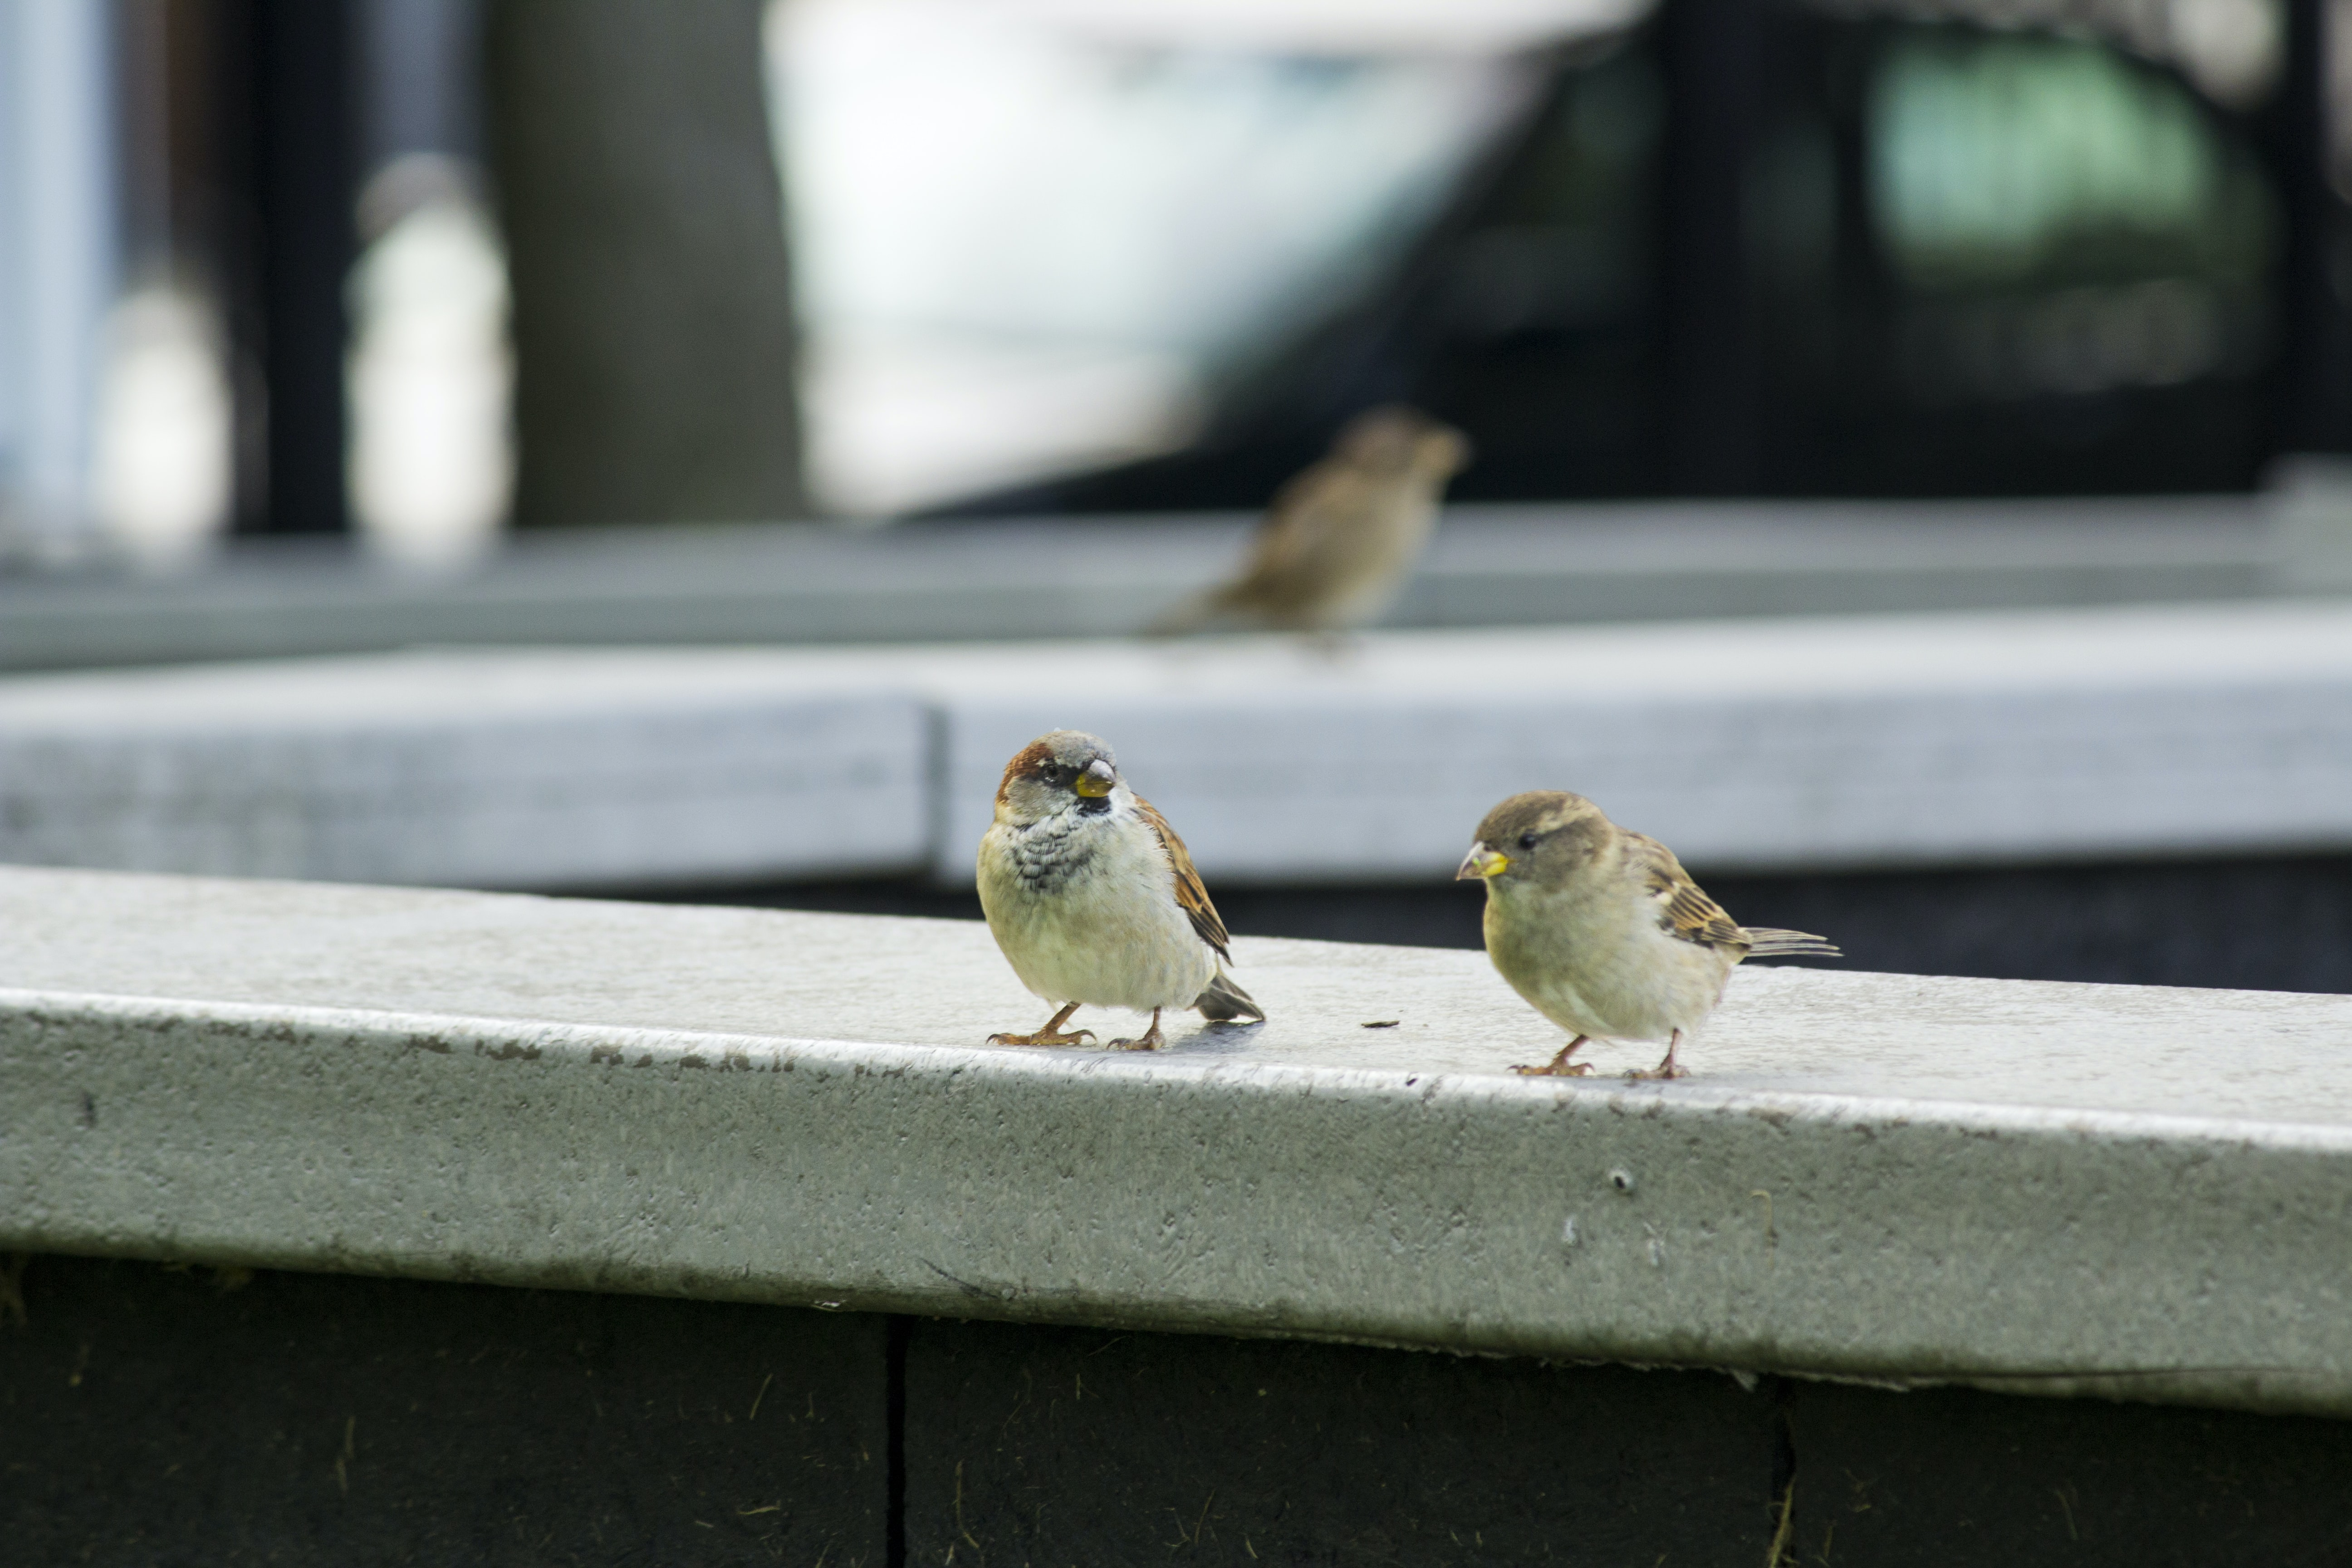 two birds perched on concrete ledge